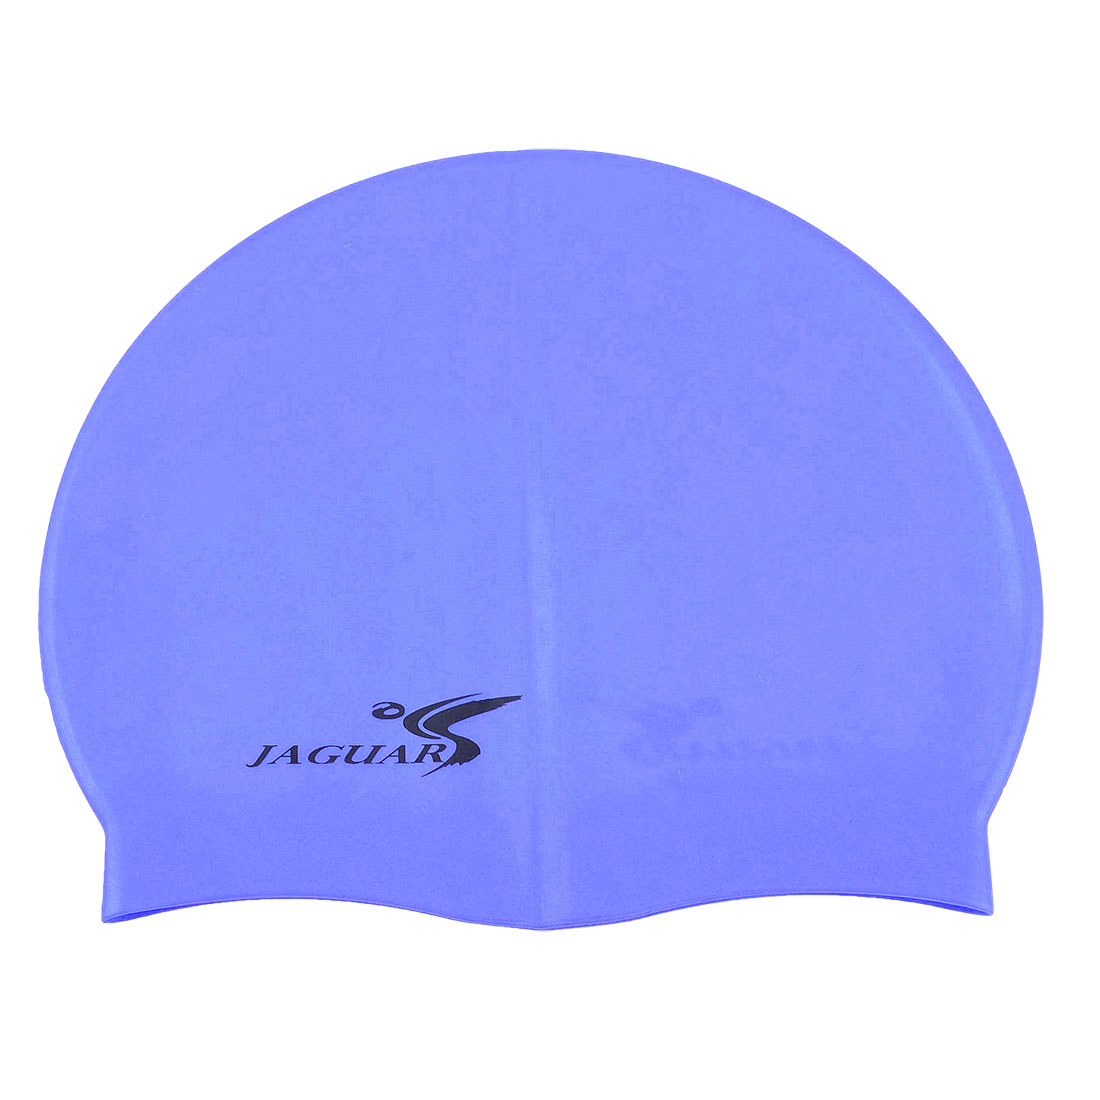 Adult Blue Dome Shaped Soft Silicone Swimming Cap Hat